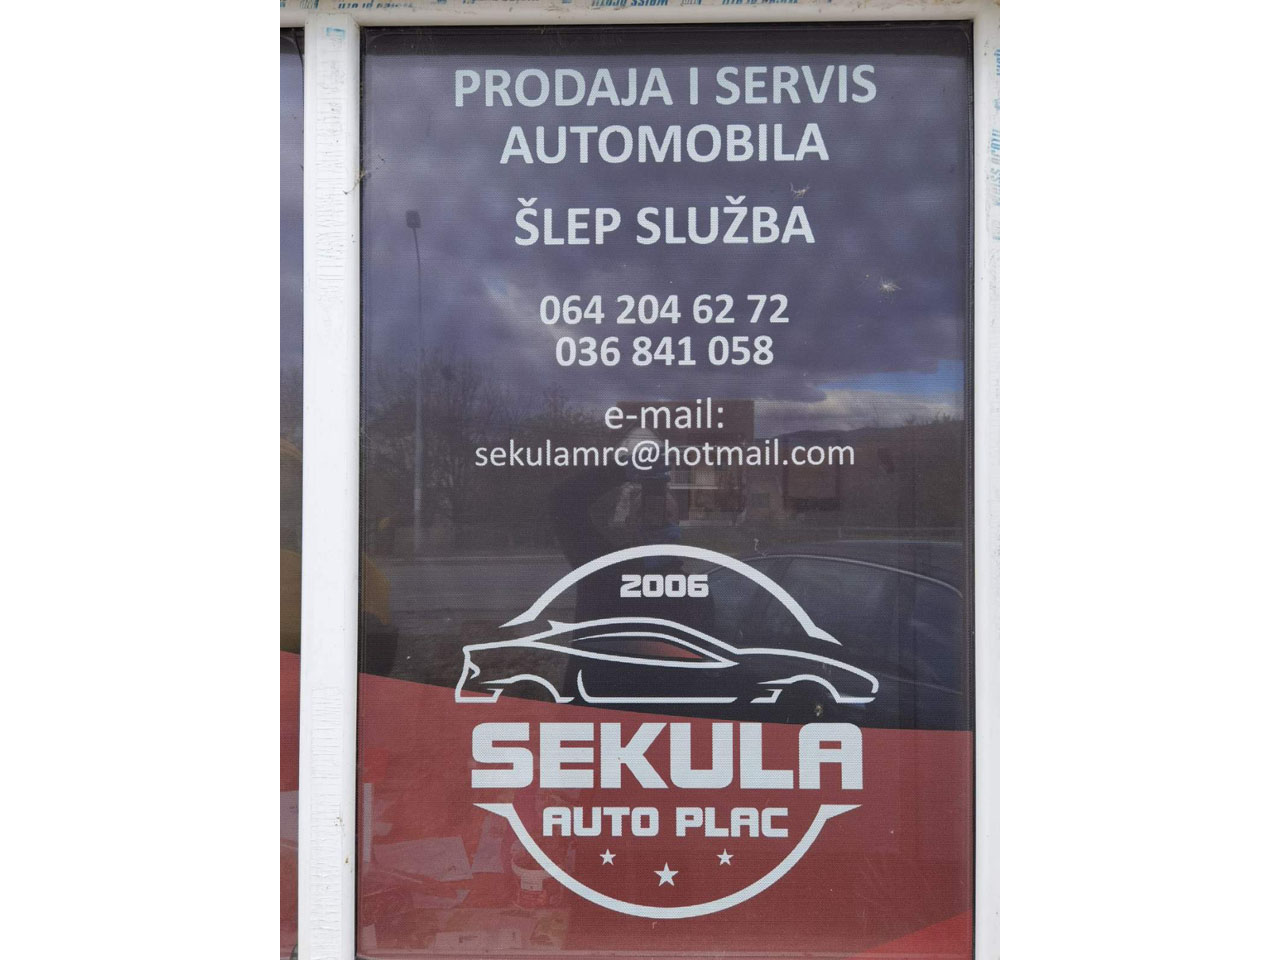 CAR AND TOWING SERVICE SEKULA 2006 Towing services Kraljevo - Photo 9